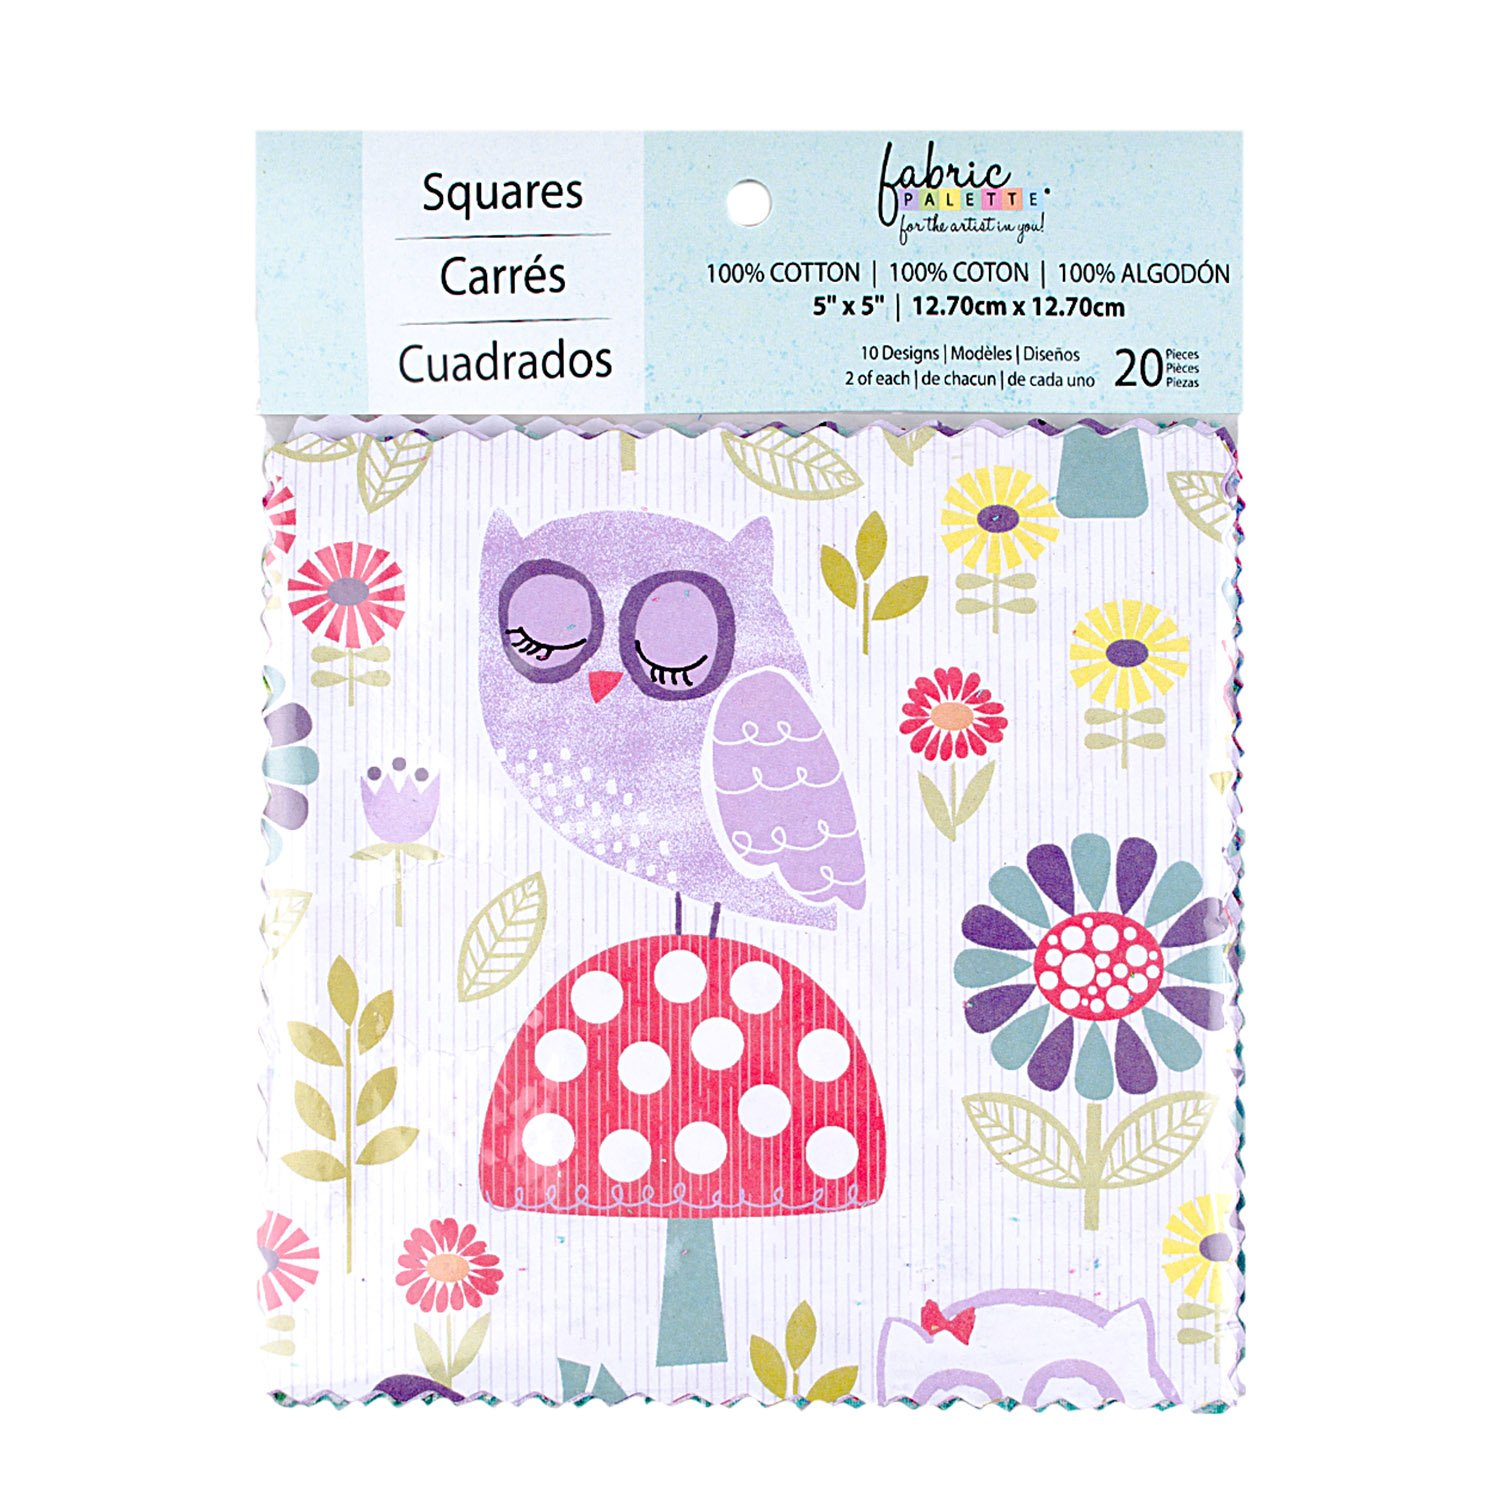 Fabric Palette 20pc Squares Pack<br>Pippet Moesby Collection<br>MD-G-CP-AC